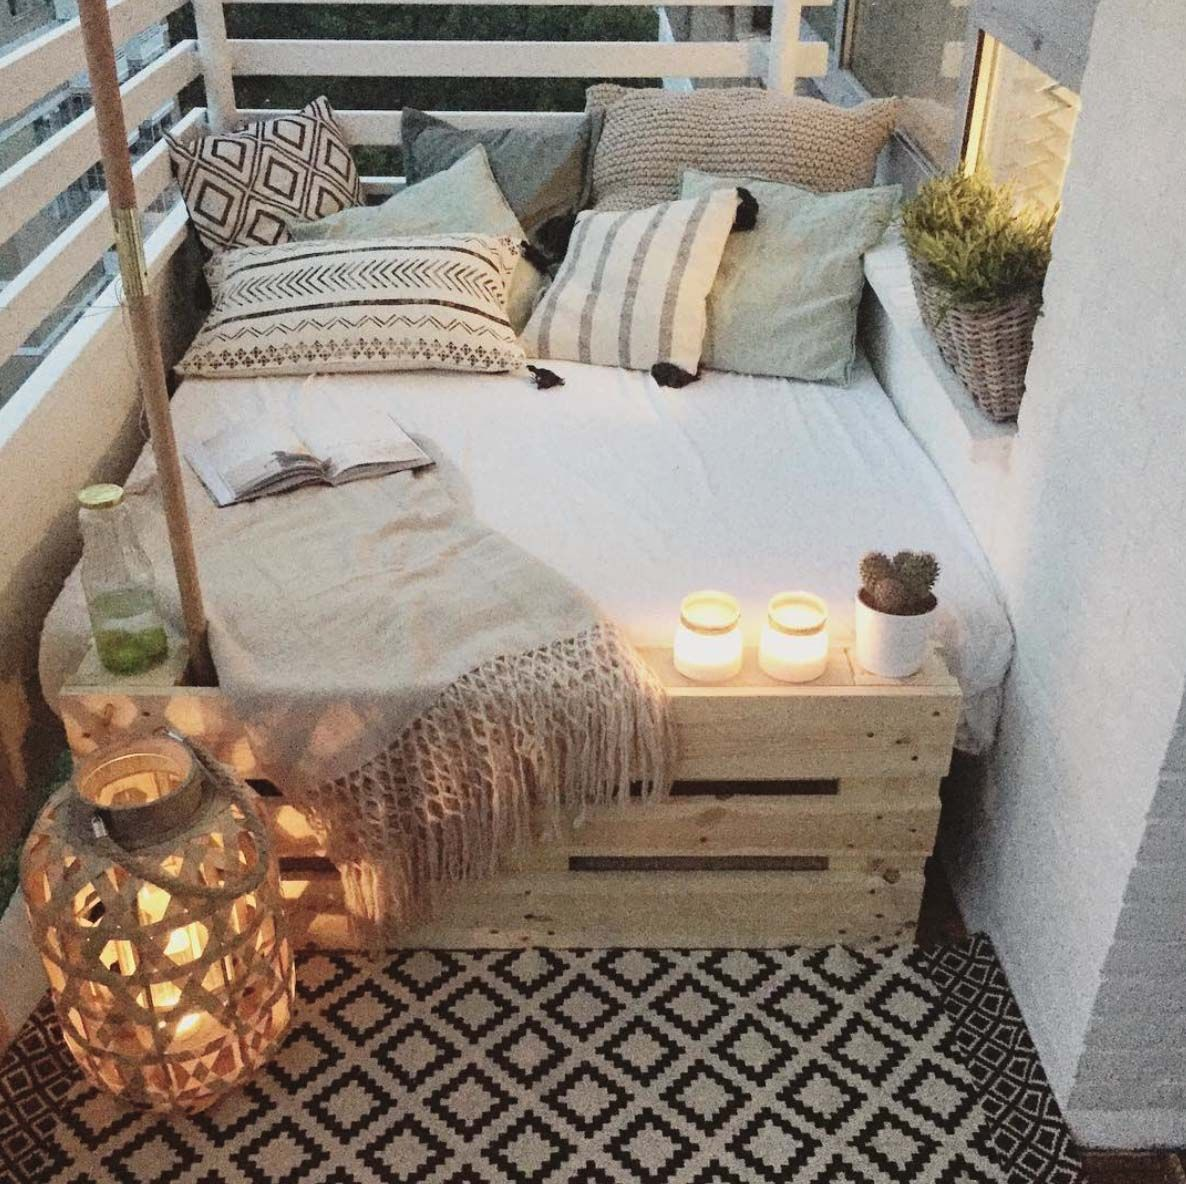 Balcony furniture small - 45 Fabulous Ideas For Spring Decor On Your Balcony